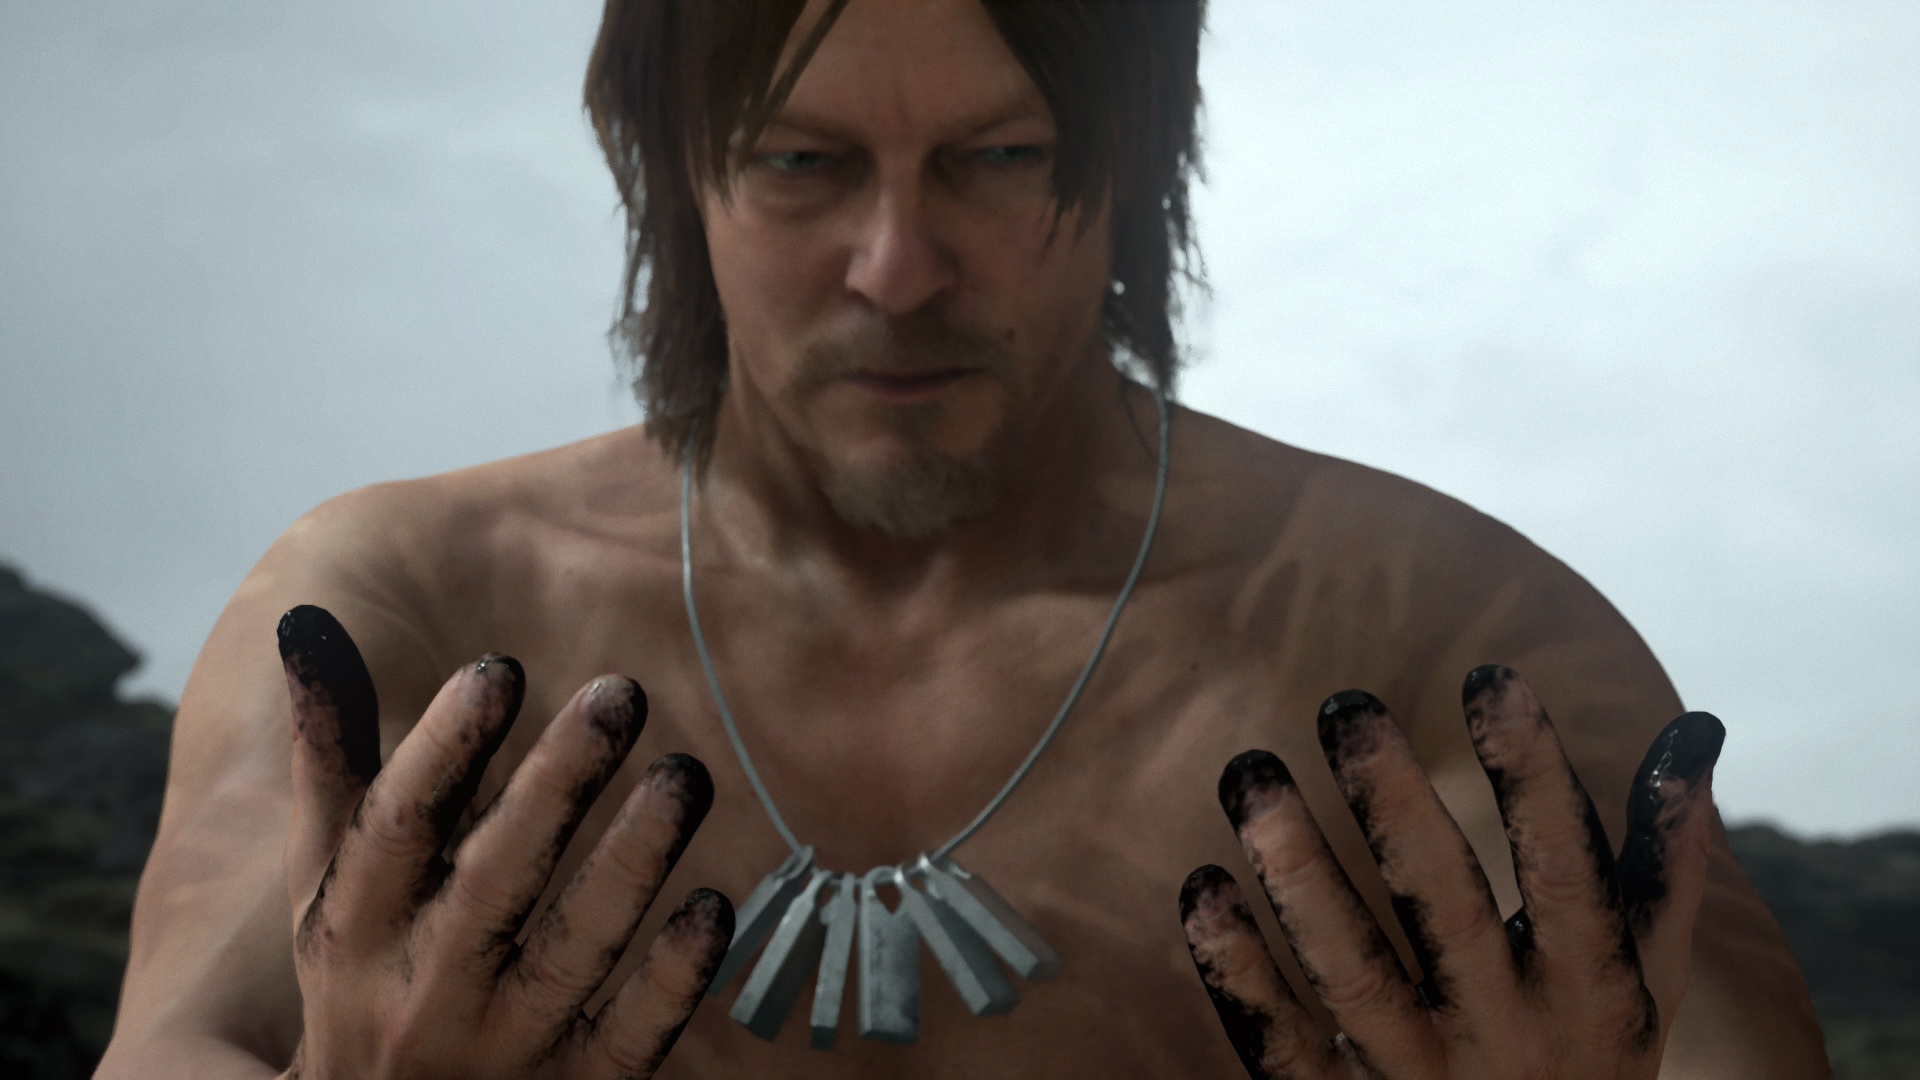 Norman Reedus says Death Stranding will make you cry